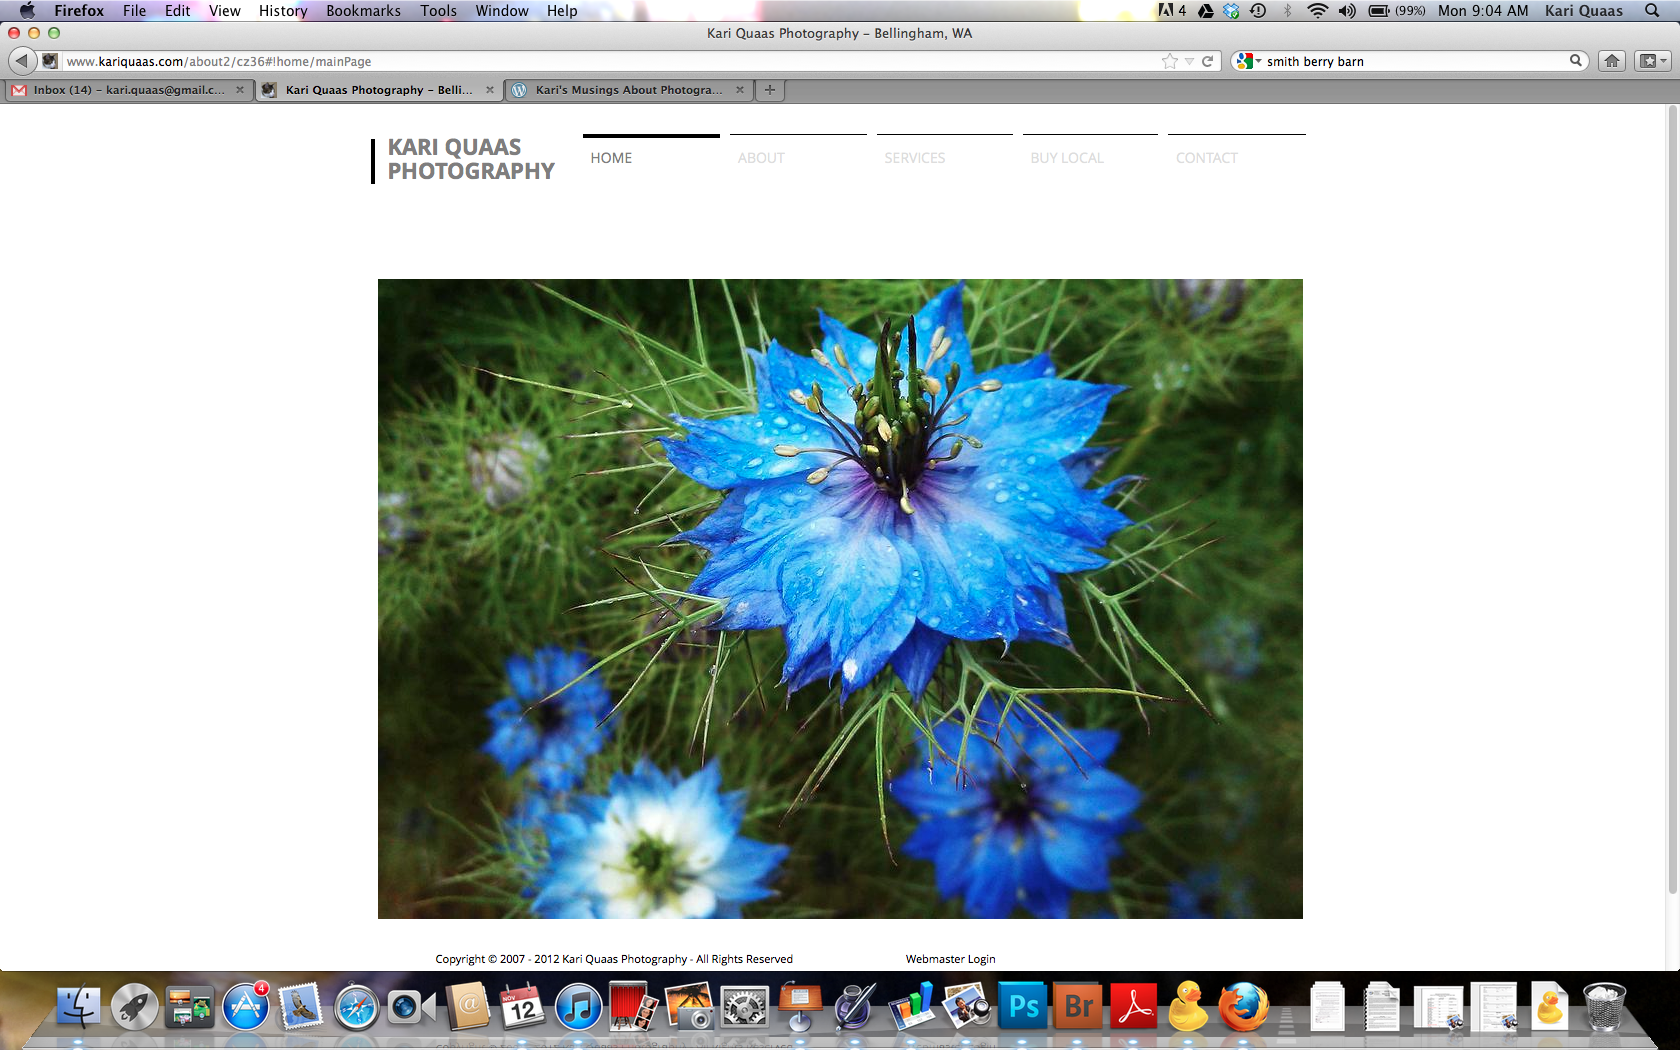 The new home page for my photography website.